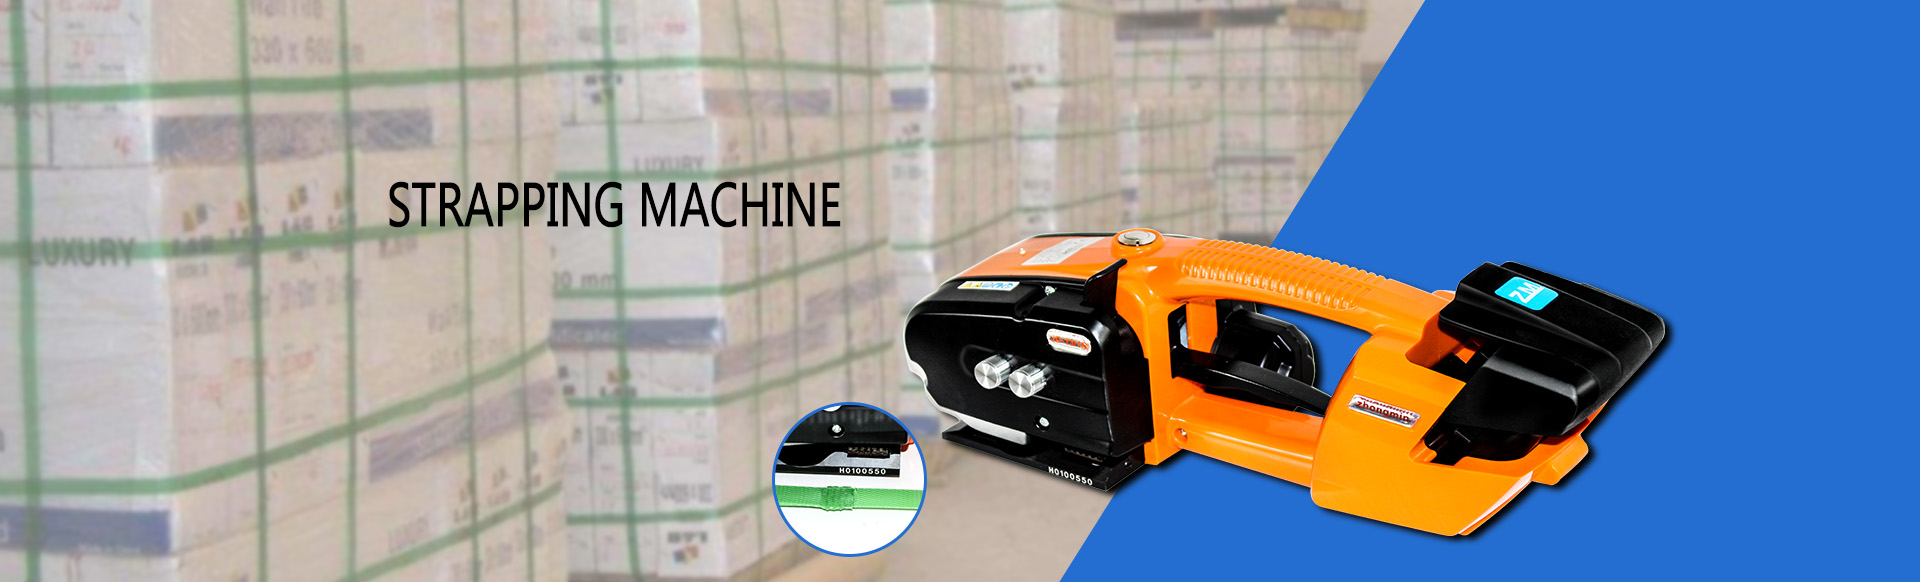 Strapping Machine&Strapping Tool